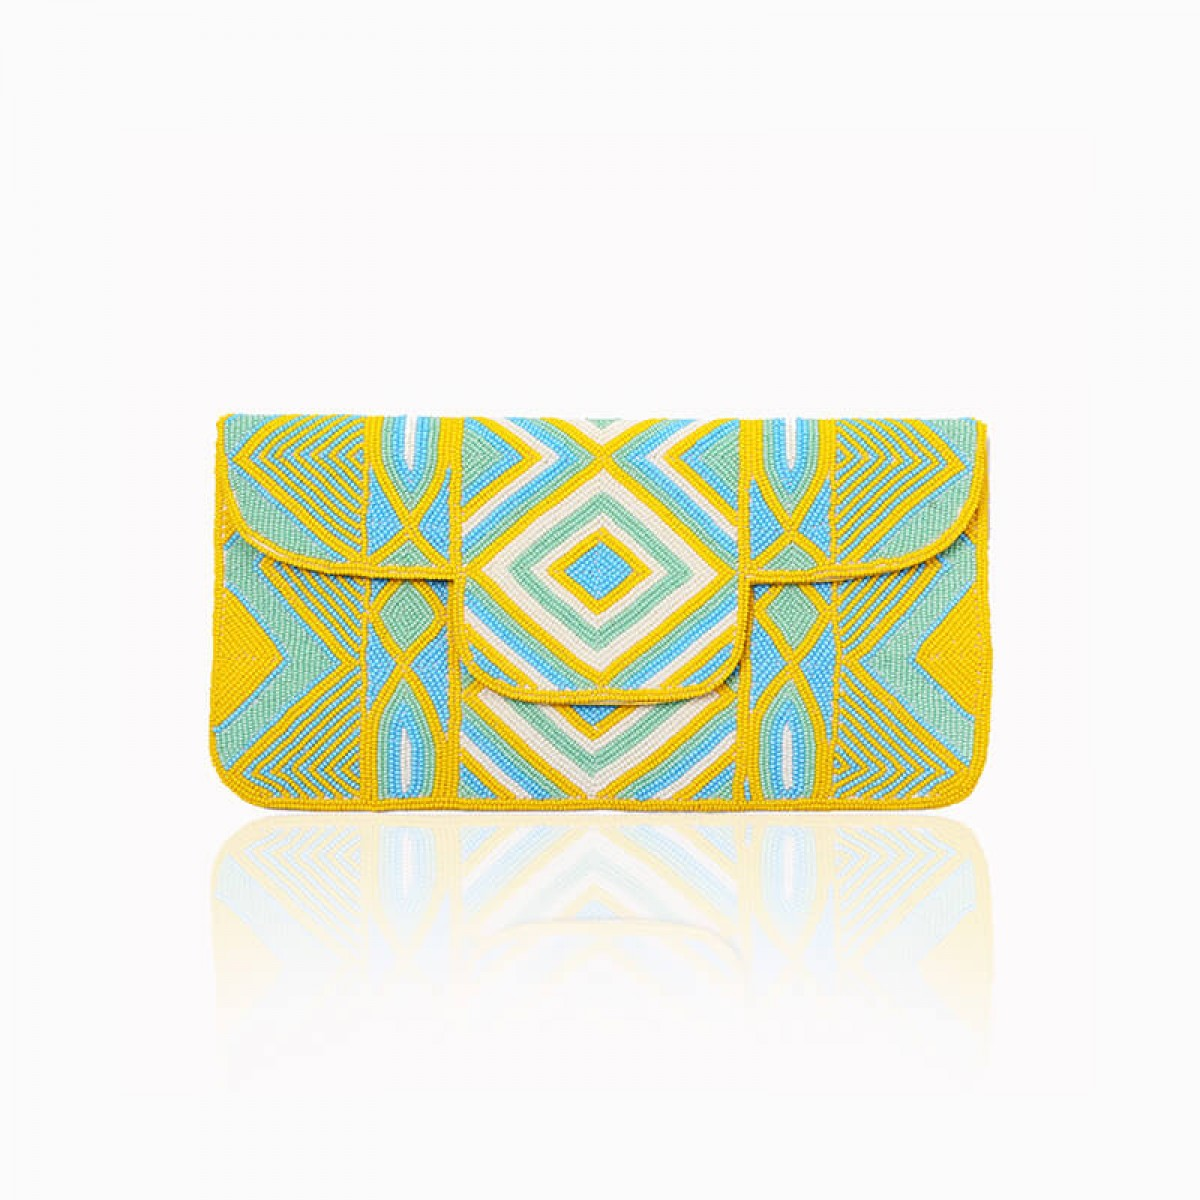 Beaded Envelop Evening Clutch Bag - Yellow